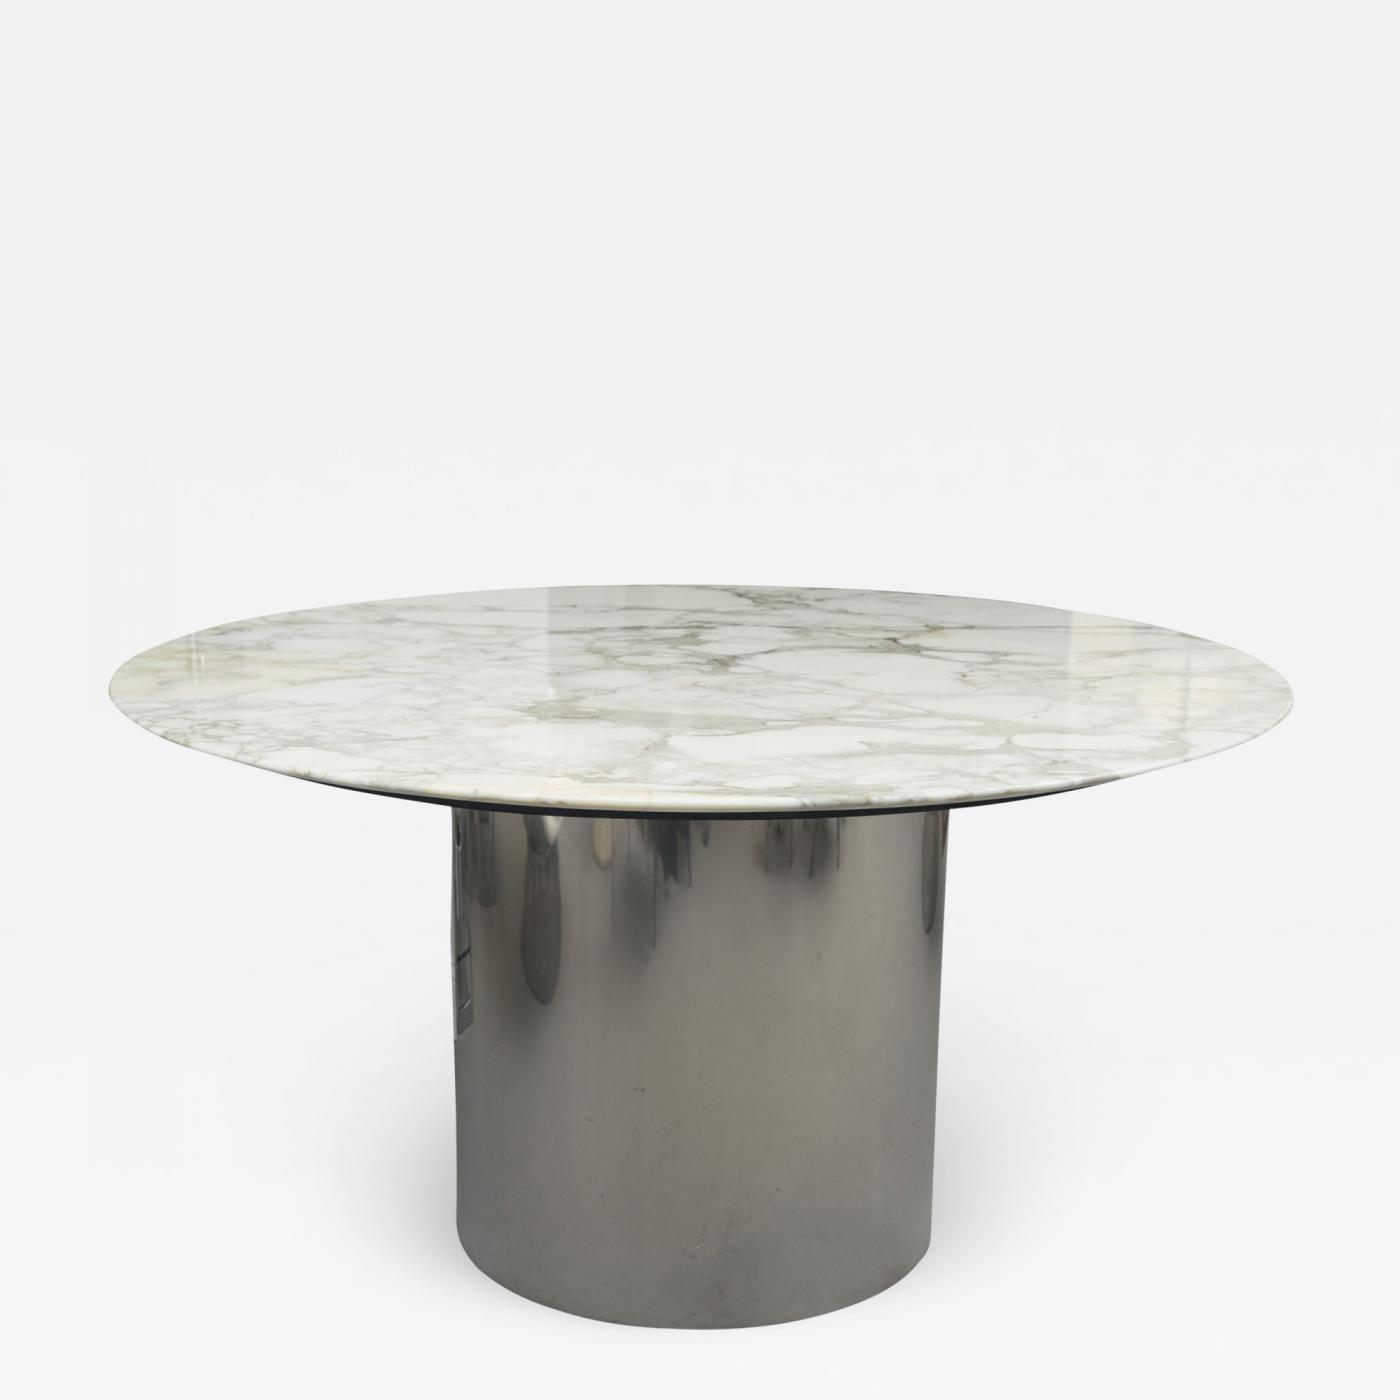 Knoll Table Florence Knoll Knoll Arabescato Marble Top Knife Edge Dining Table On Chrome Drum Base